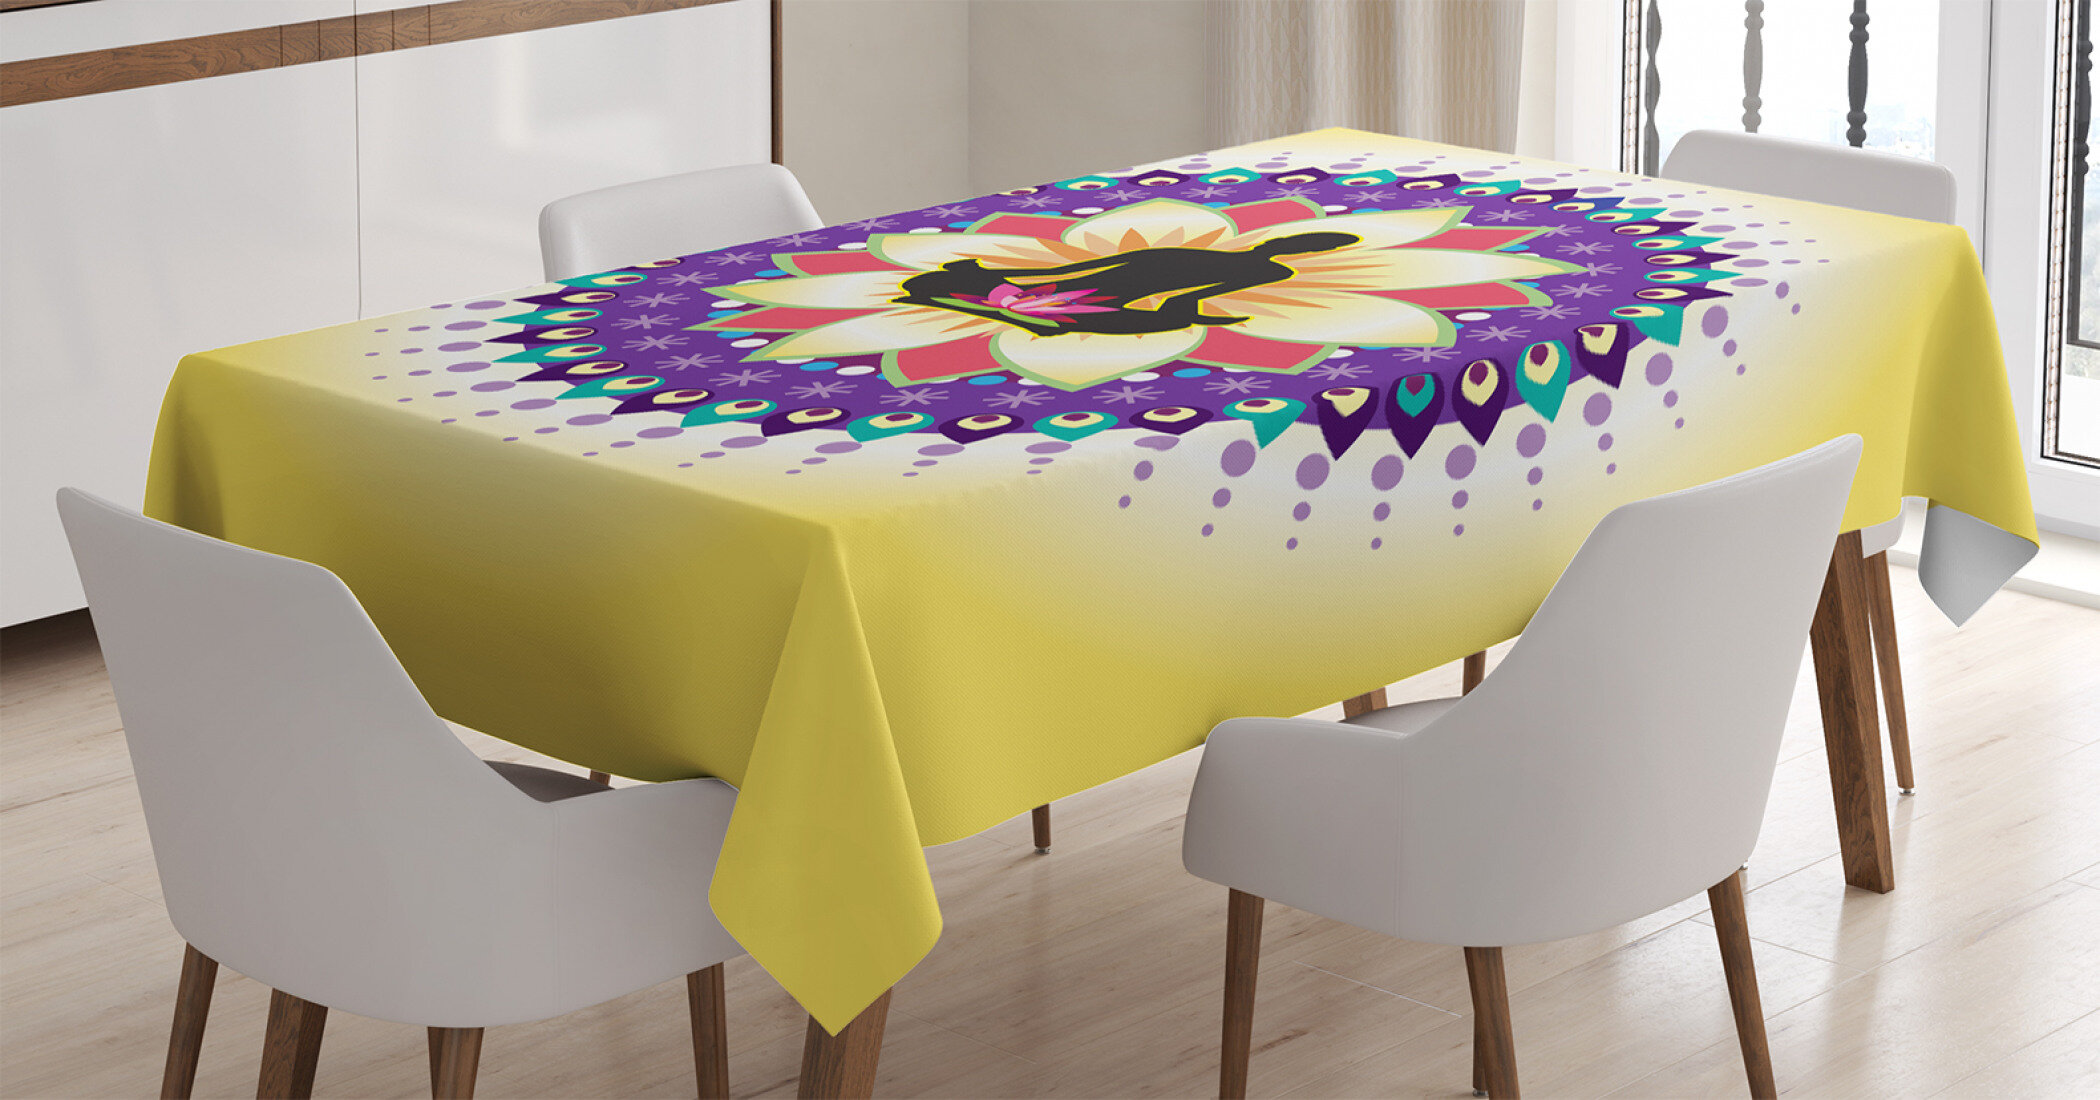 East Urban Home Ambesonne Yoga Tablecloth Round Circle For Lotus Sitting Posture Peaceful Mind Workout Print Rectangular Table Cover Dining Room Kitchen Decor 52 X 70 Yellow Purple Black Wayfair